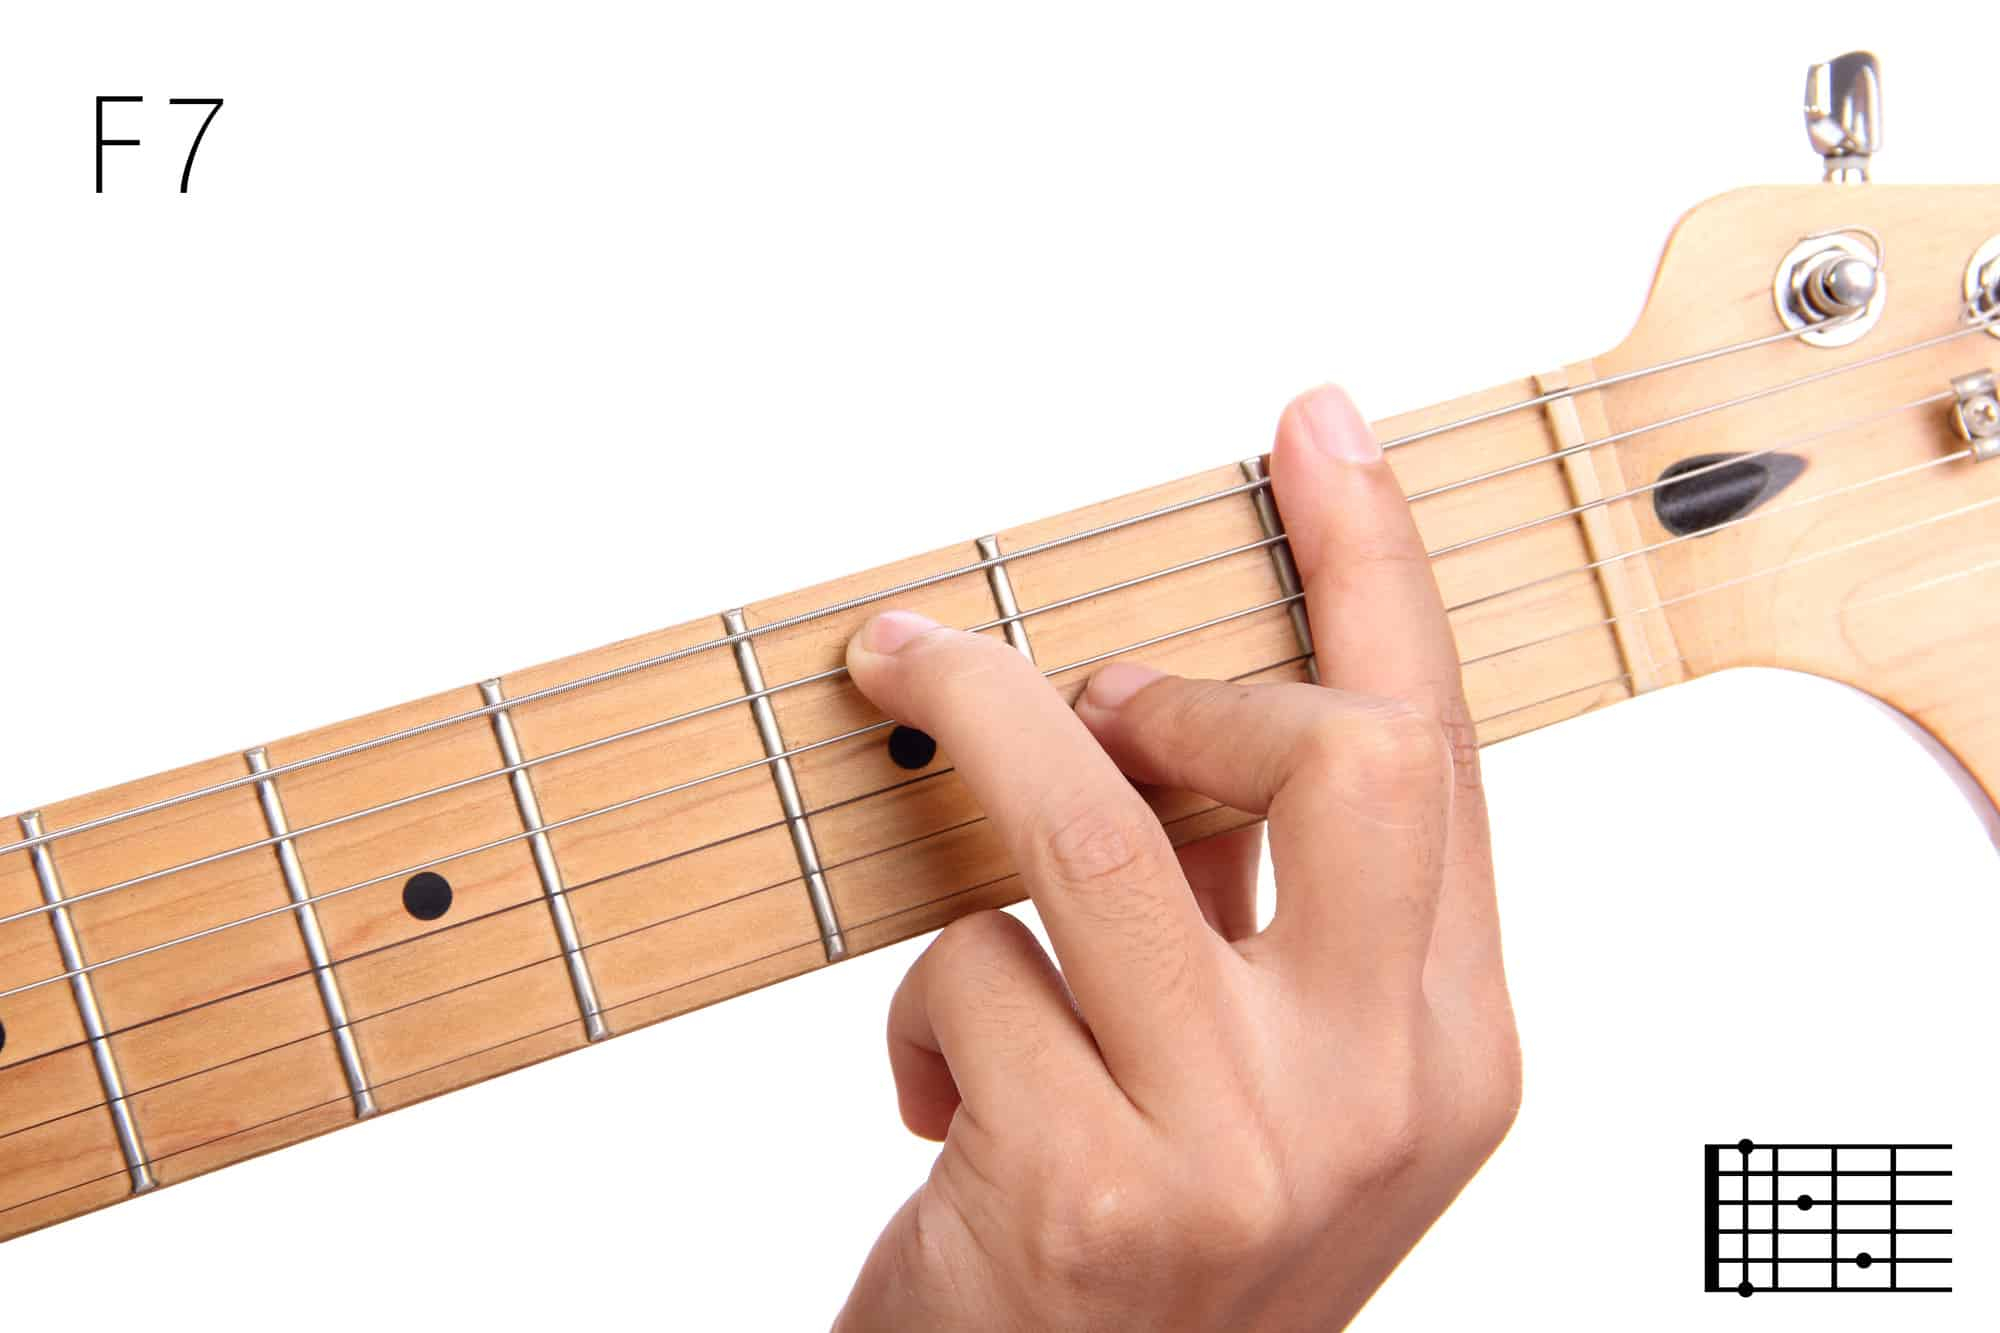 F# Guitar Chord Learn To Read And Play The F Minor Chords On A Guitar